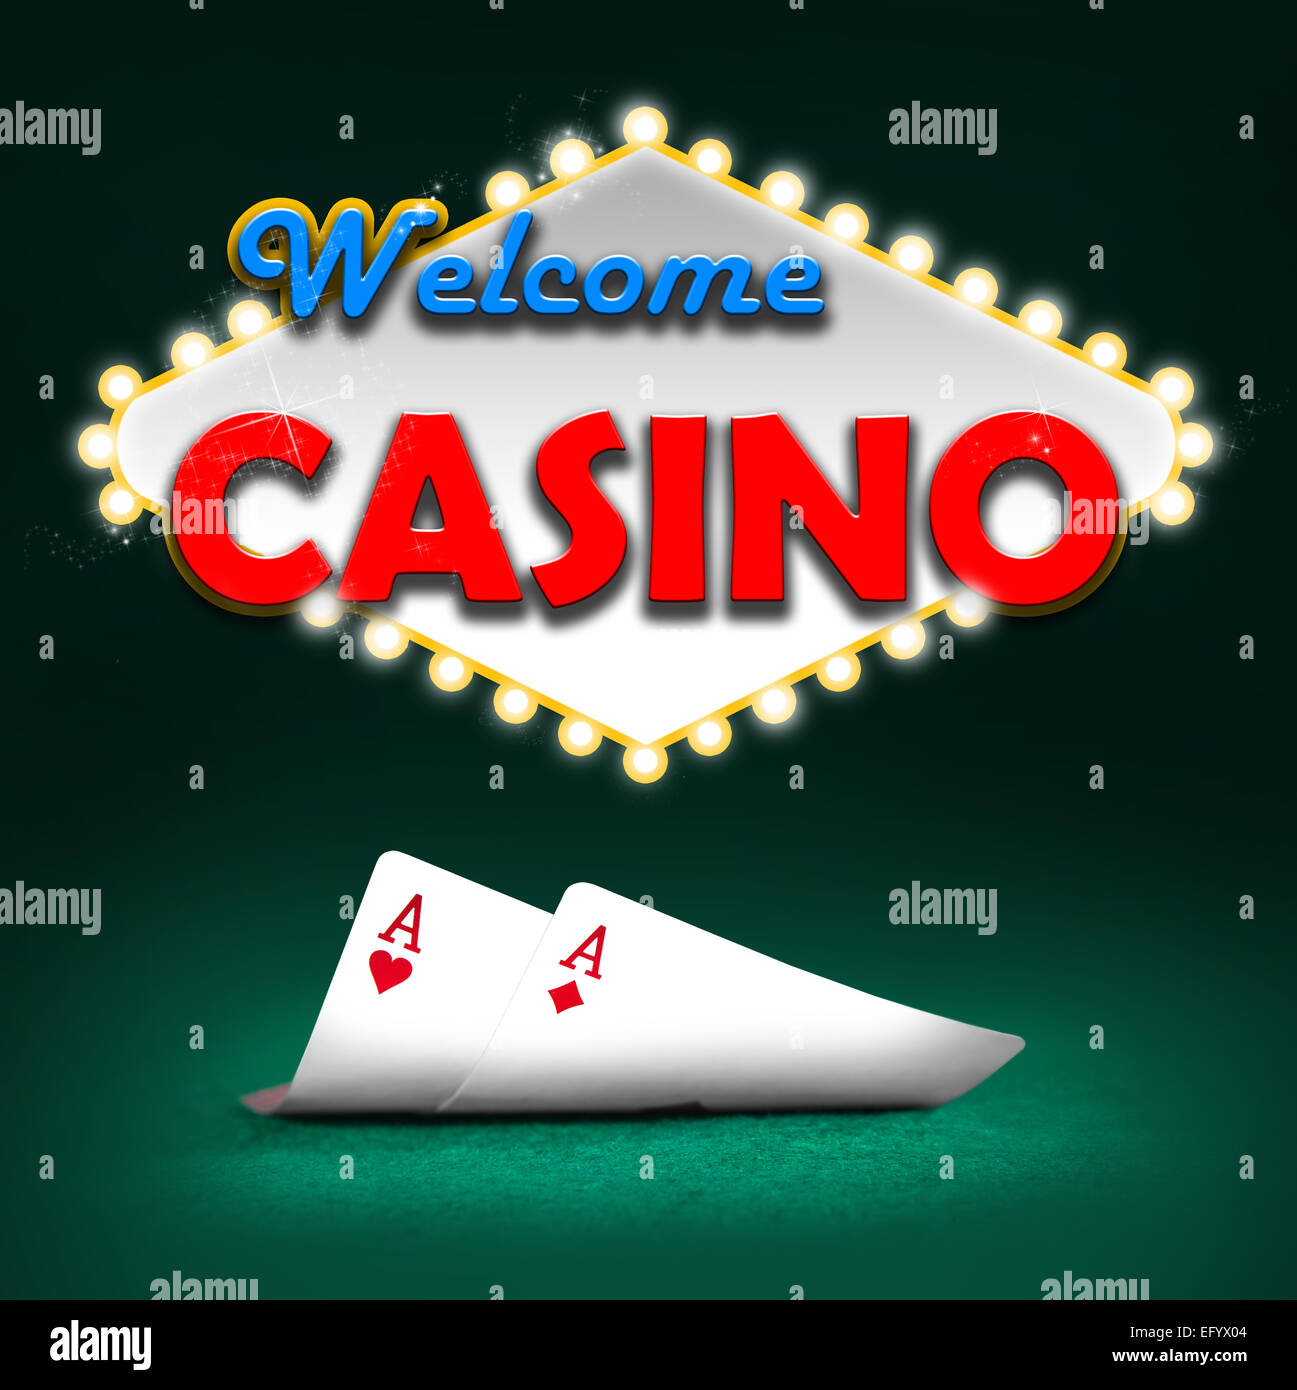 Welcome casino, gambling background color - Stock Image